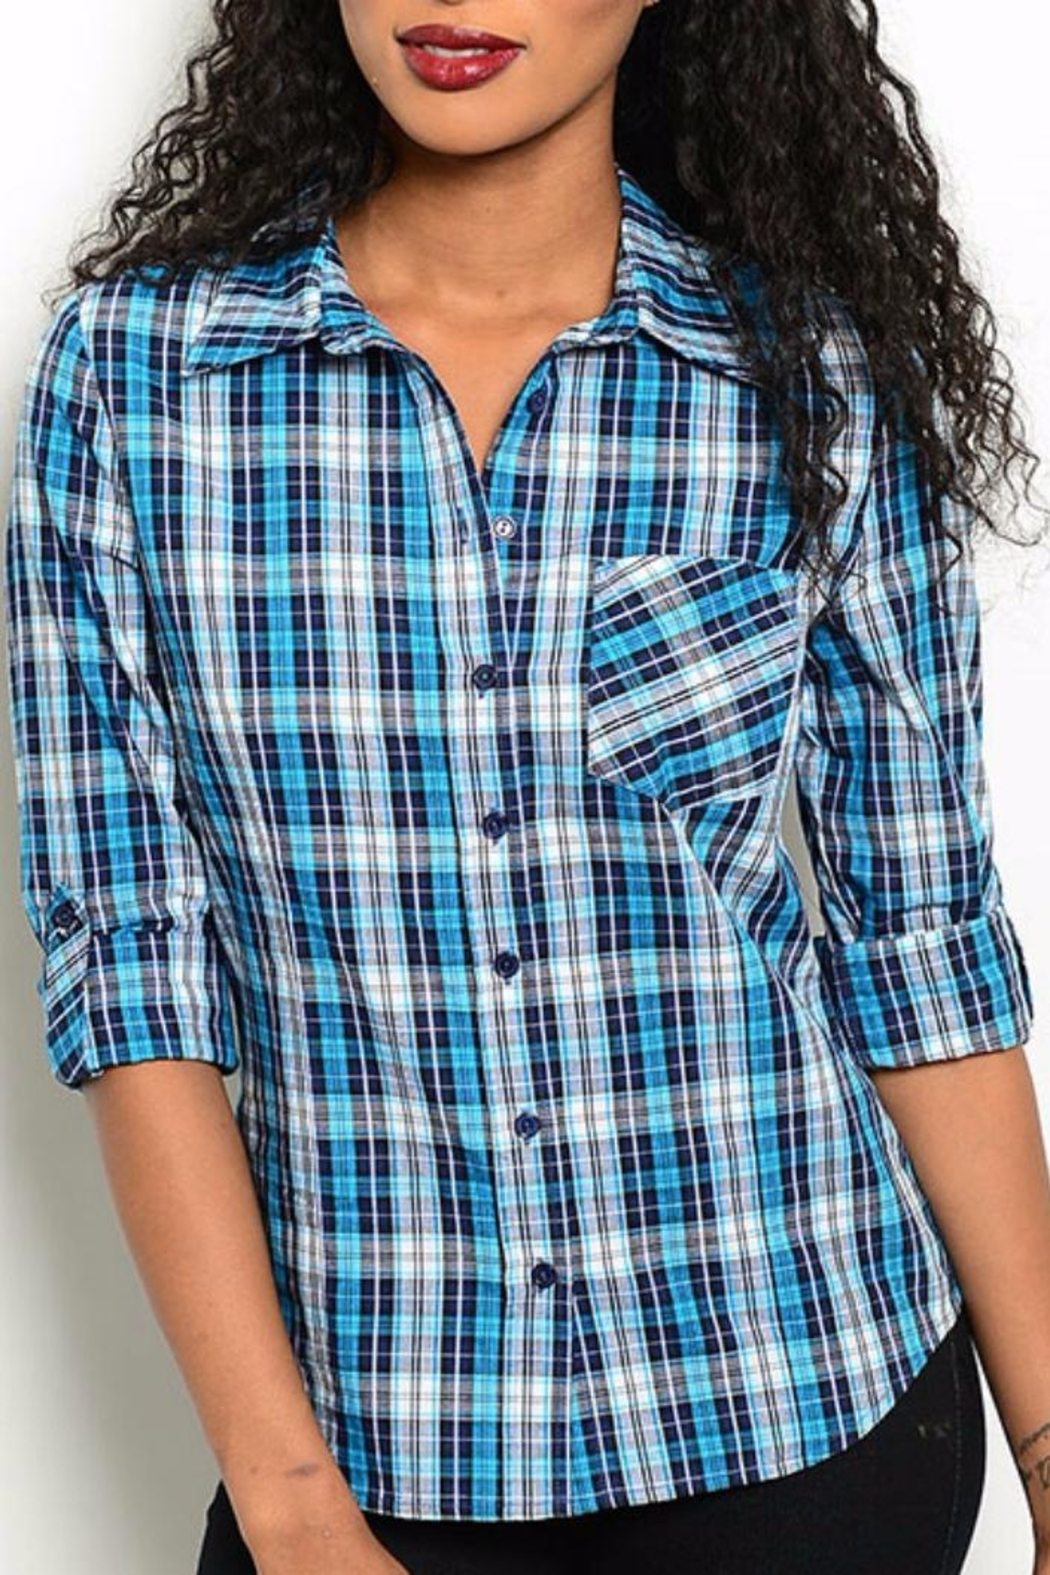 One Story Blue Plaid Top - Main Image